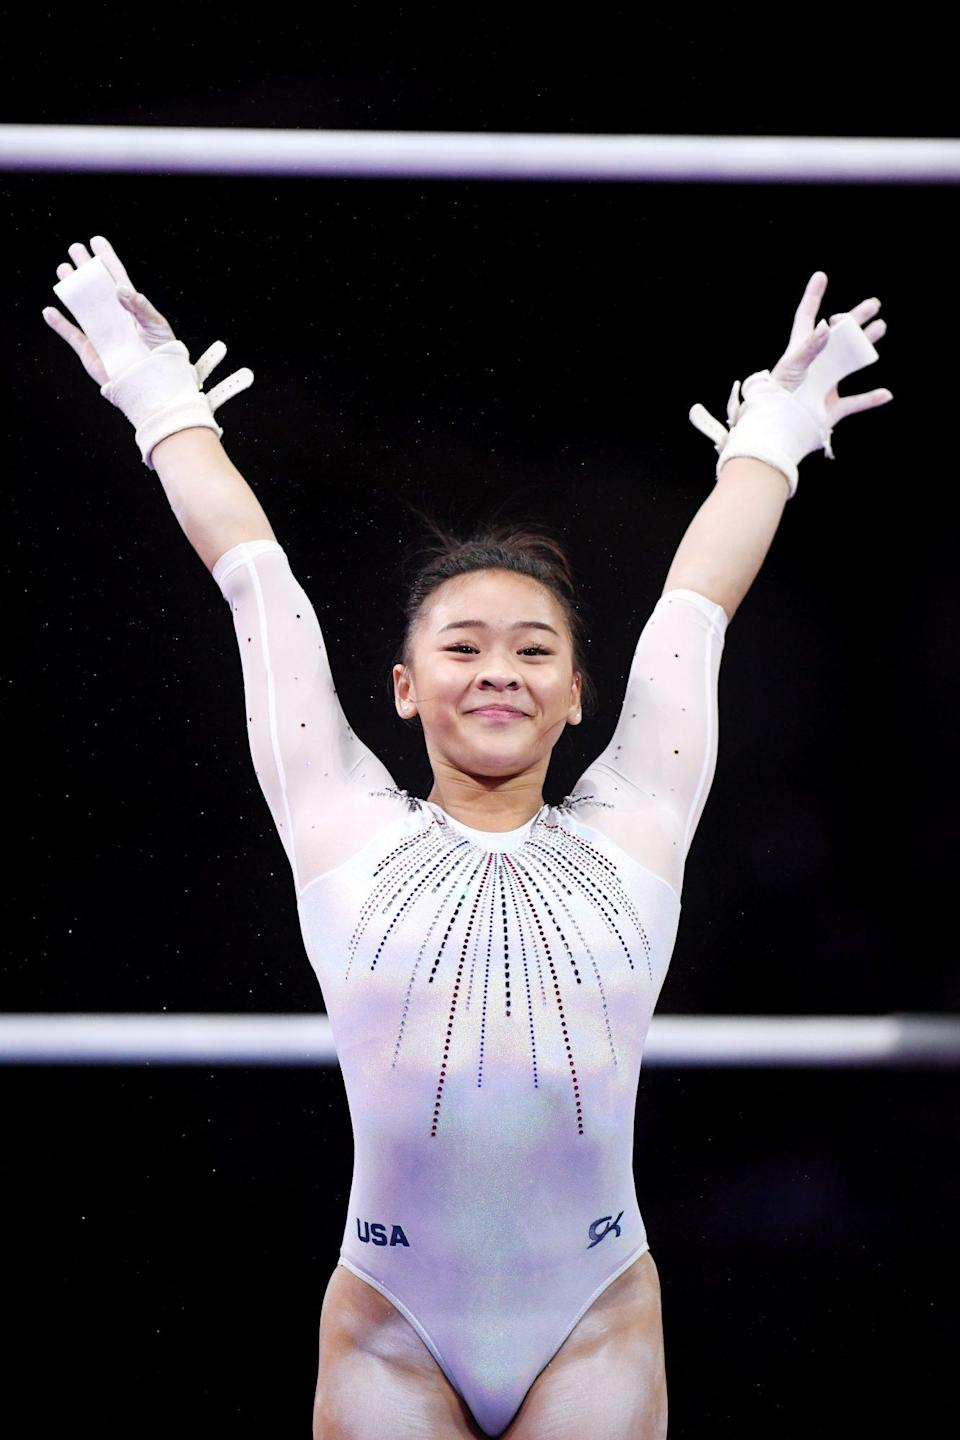 """<p>Team USA's <a href=""""https://people.com/sports/tokyo-olympics-sunisa-lee-first-hmong-american-olympic-gymnast-achieving-her-dream/"""" rel=""""nofollow noopener"""" target=""""_blank"""" data-ylk=""""slk:Sunisa Lee"""" class=""""link rapid-noclick-resp"""">Sunisa Lee</a> makes history the first Hmong American Olympic gymnast, making her debut at the Tokyo Summer Olympics.</p> <p>On July 27, the first-time Olympian <a href=""""https://people.com/sports/tokyo-olympics-simone-biles-suni-lee-jordan-chiles-grace-mccallum-win-team-silver/"""" rel=""""nofollow noopener"""" target=""""_blank"""" data-ylk=""""slk:won silver"""" class=""""link rapid-noclick-resp"""">won silver</a> alongside Simone Biles, Jordan Chiles and Grace McCallum at the women's team gymnastics final July 27.</p> <p>Before the Games began, Lee told <a href=""""https://people.com/sports/tokyo-olympics-sunisa-lee-first-hmong-american-olympic-gymnast-achieving-her-dream/"""" rel=""""nofollow noopener"""" target=""""_blank"""" data-ylk=""""slk:PEOPLE"""" class=""""link rapid-noclick-resp"""">PEOPLE</a> that her title as the first Hmong American Olympic gymnast """"means a lot to the Hmong community ... and to just be an inspiration to other Hmong people [means] a lot to me too.""""</p>"""